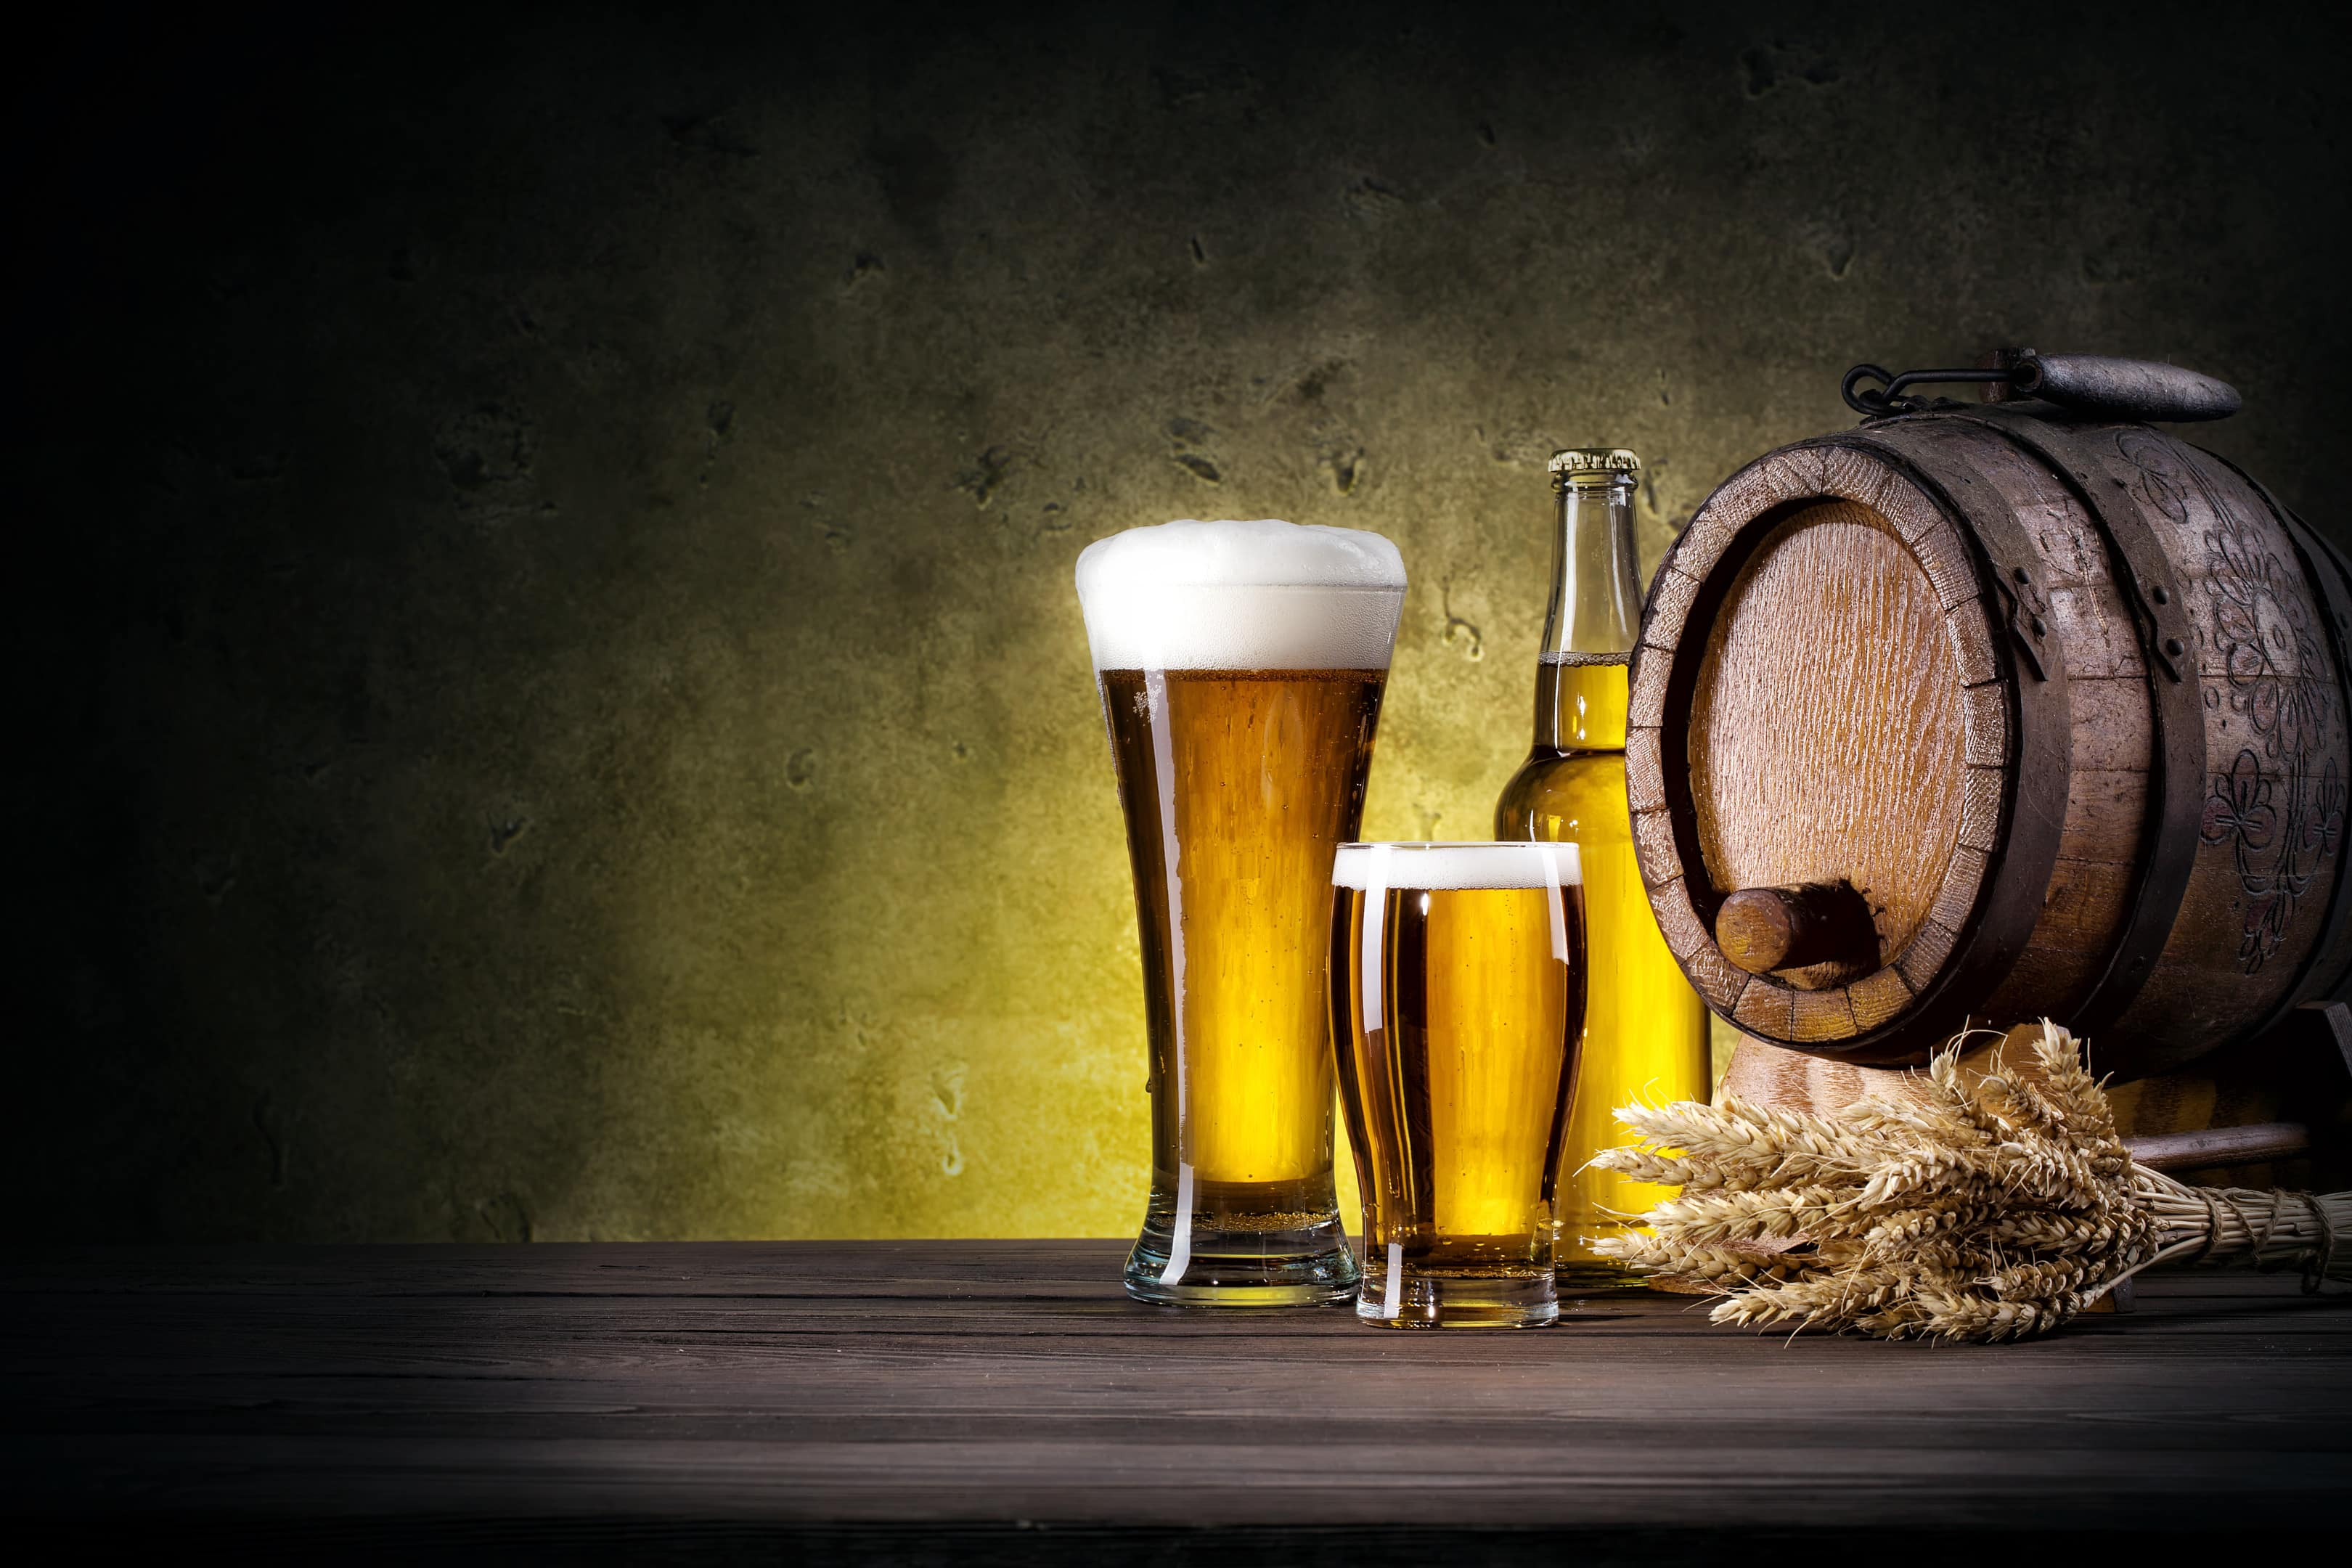 Glasses of beer with beer barrel